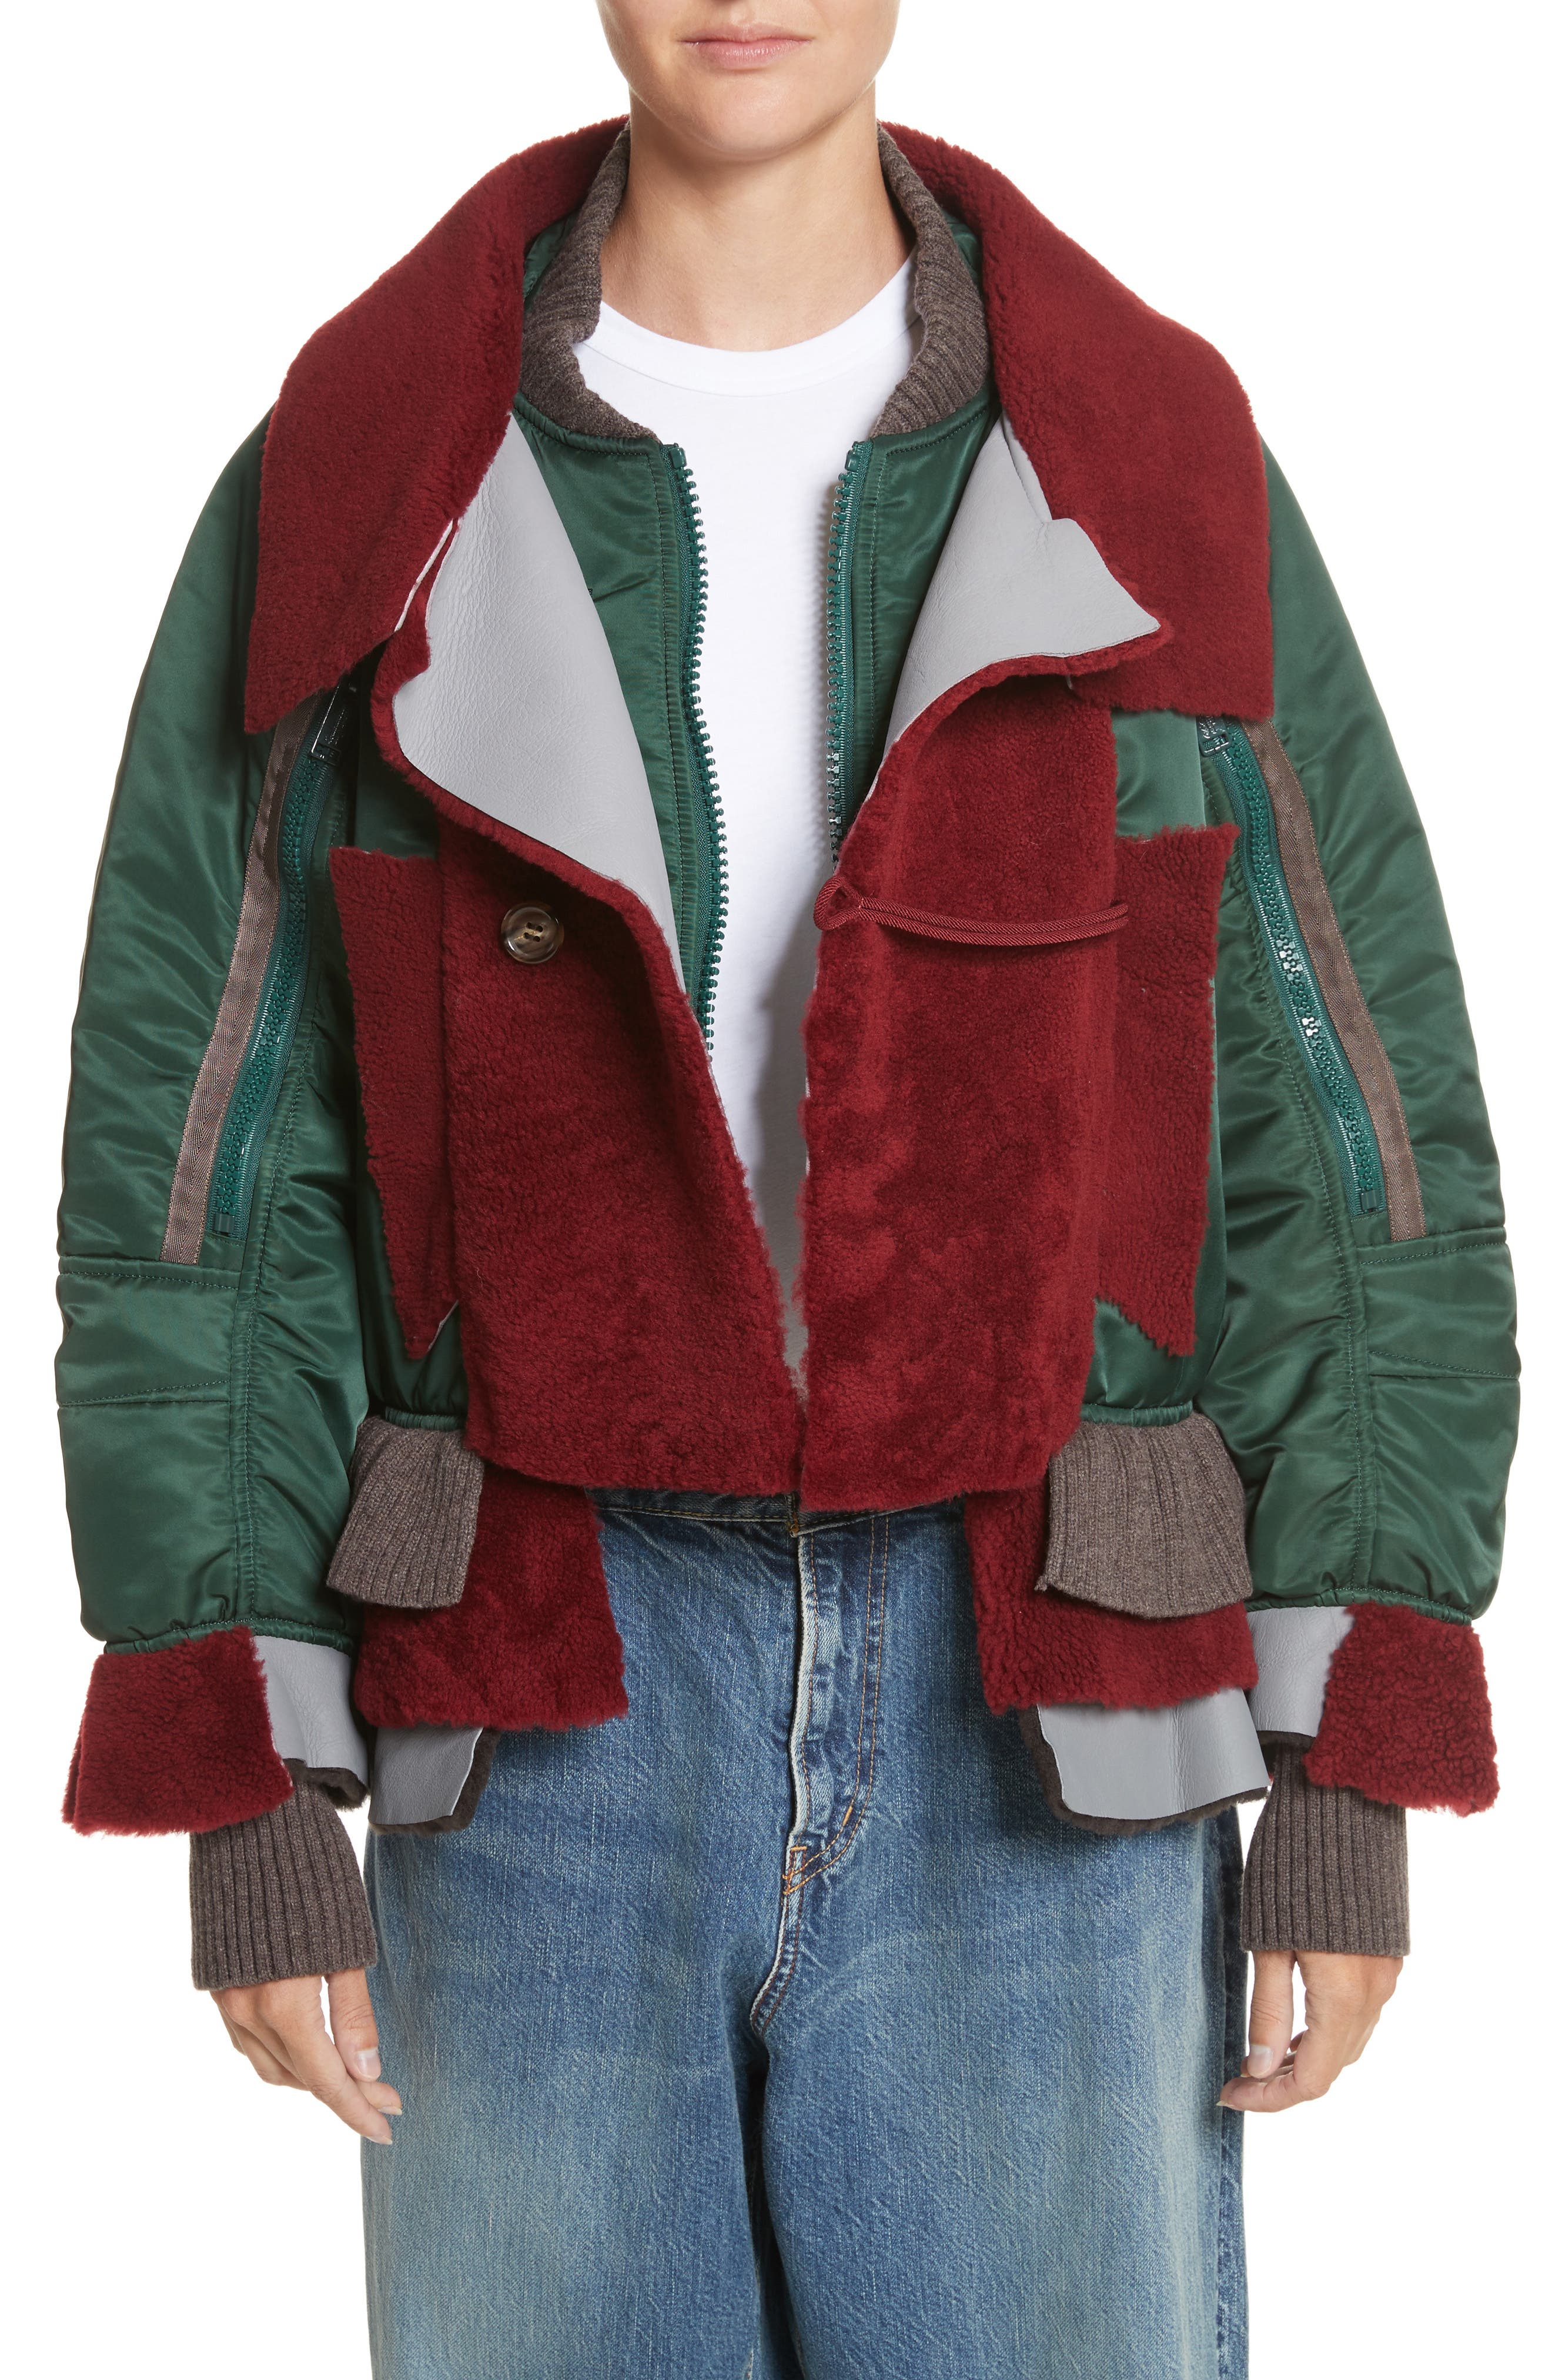 Main Image - Undercover Mixed Media Bomber Jacket with Genuine Shearling Trim